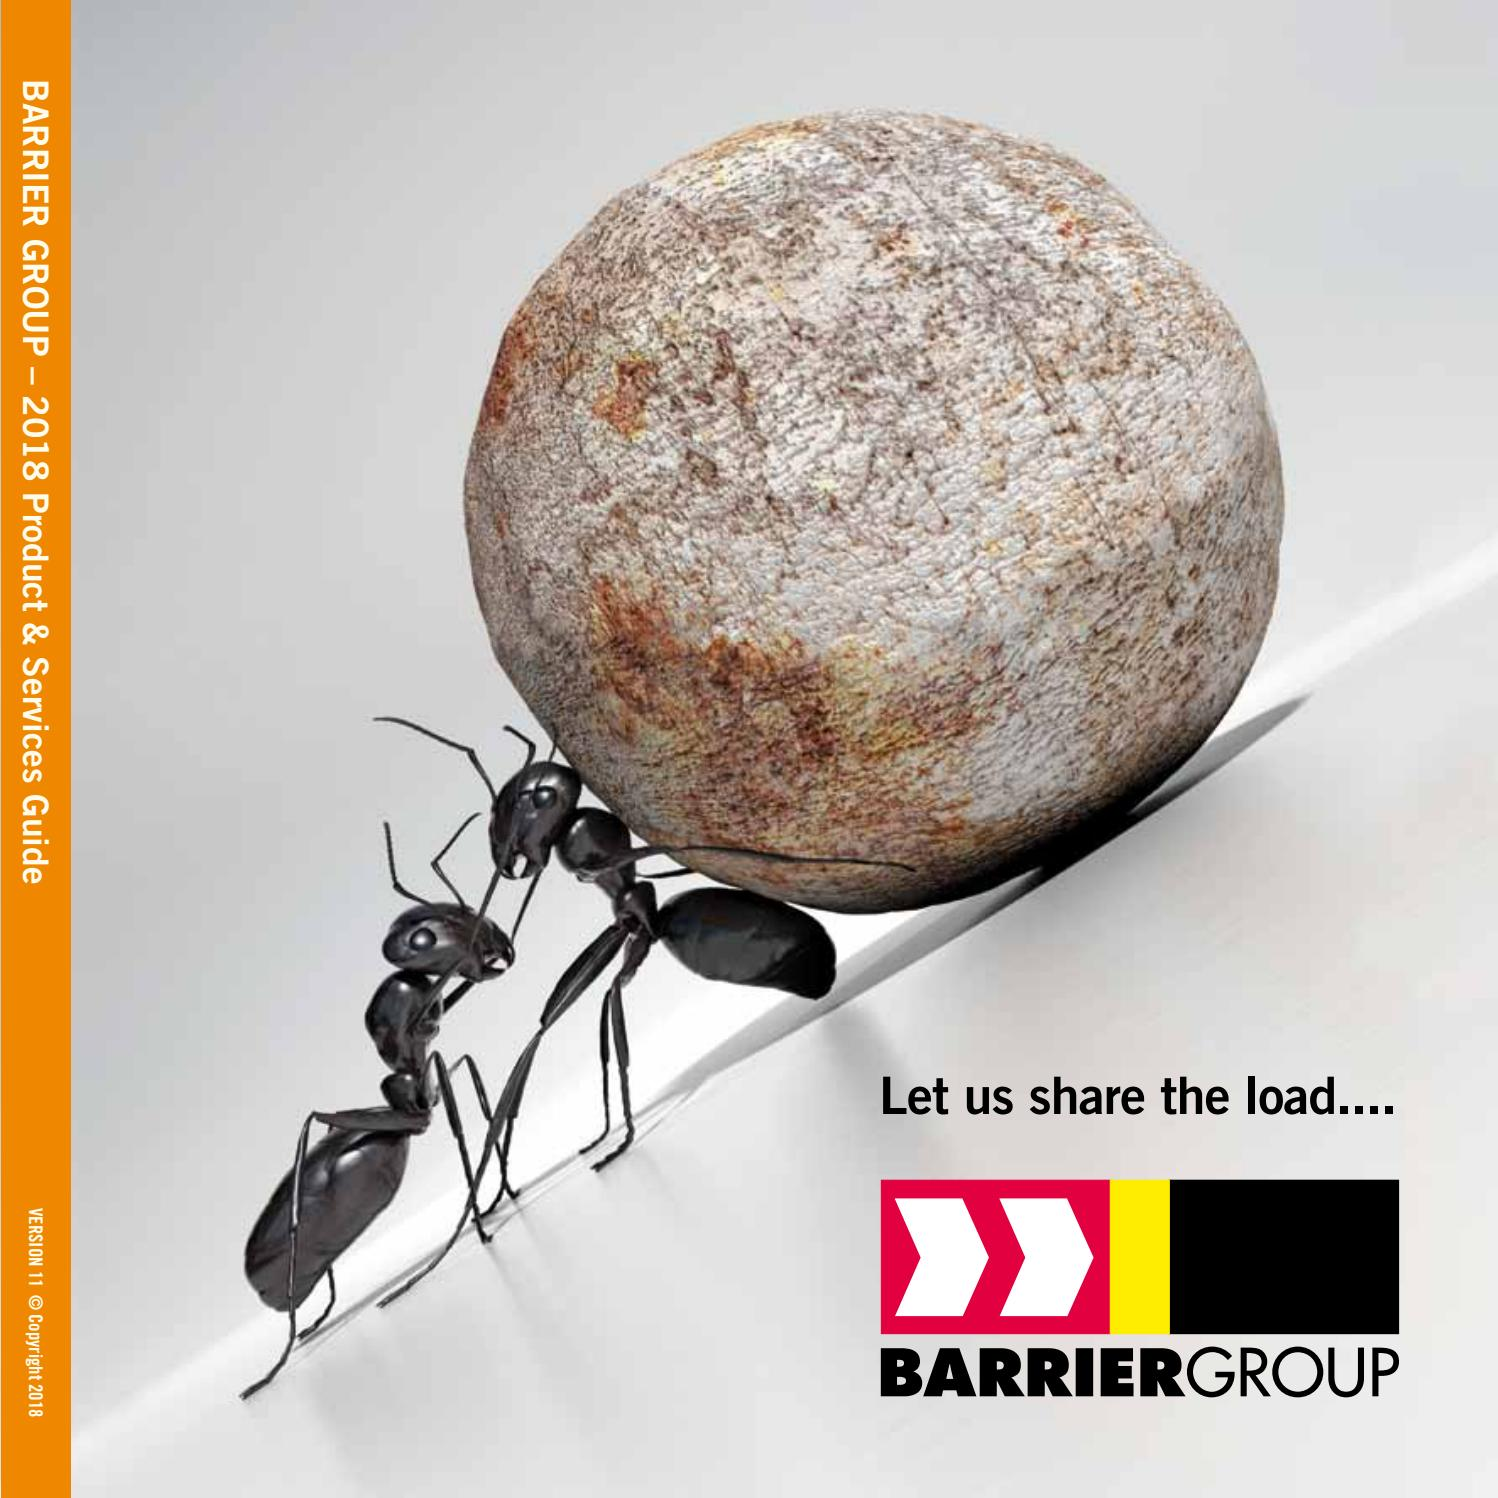 Barrier group 2018 Product & Services Guide by Barrier Group Pty Ltd